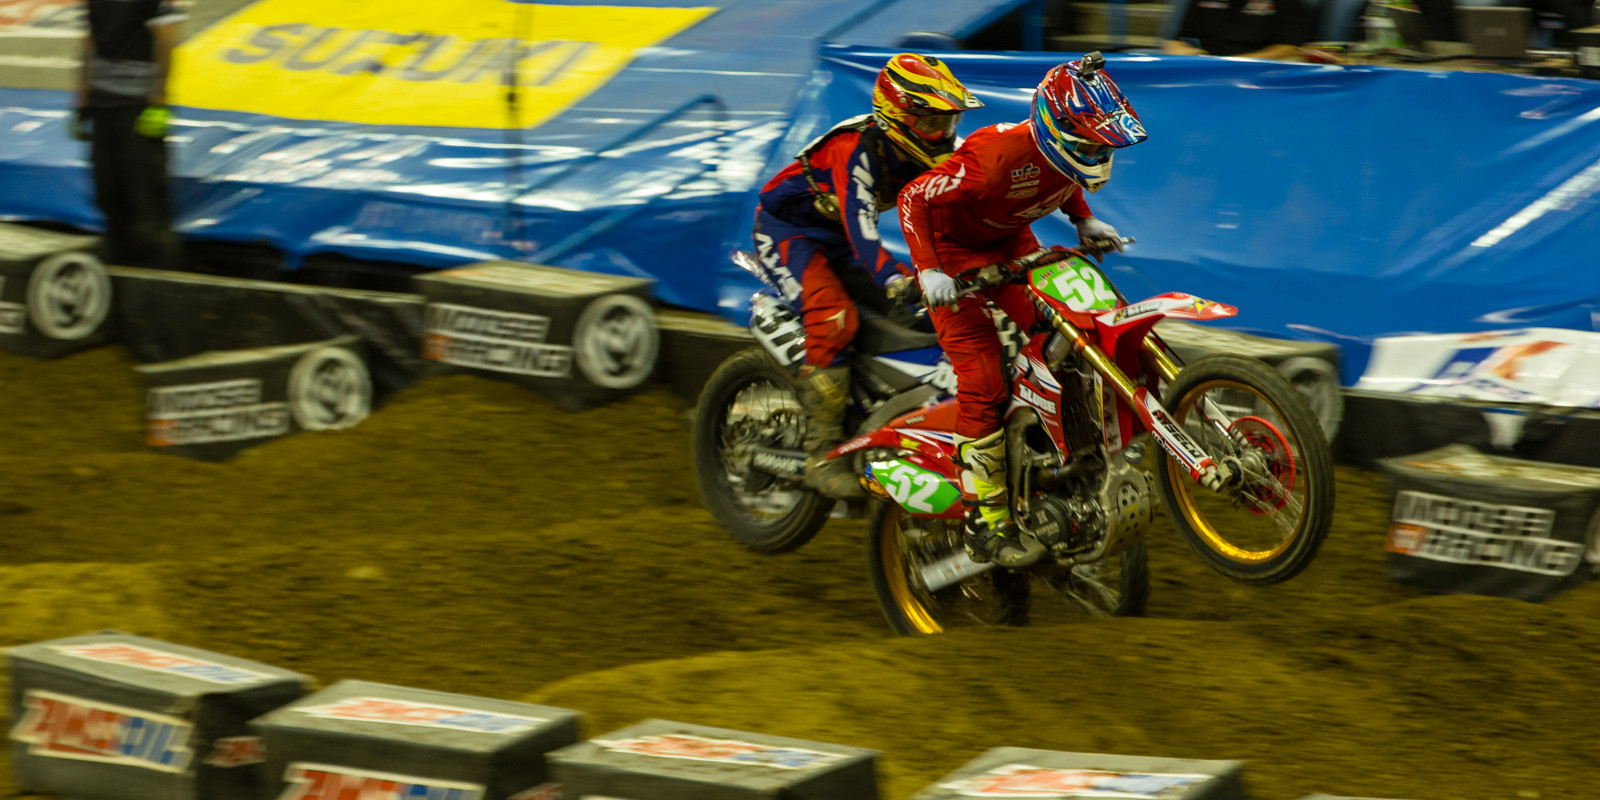 Ben Lamay - Photo Gallery: Ontario Arenacross - Saturday Night - Motocross Pictures - Vital MX